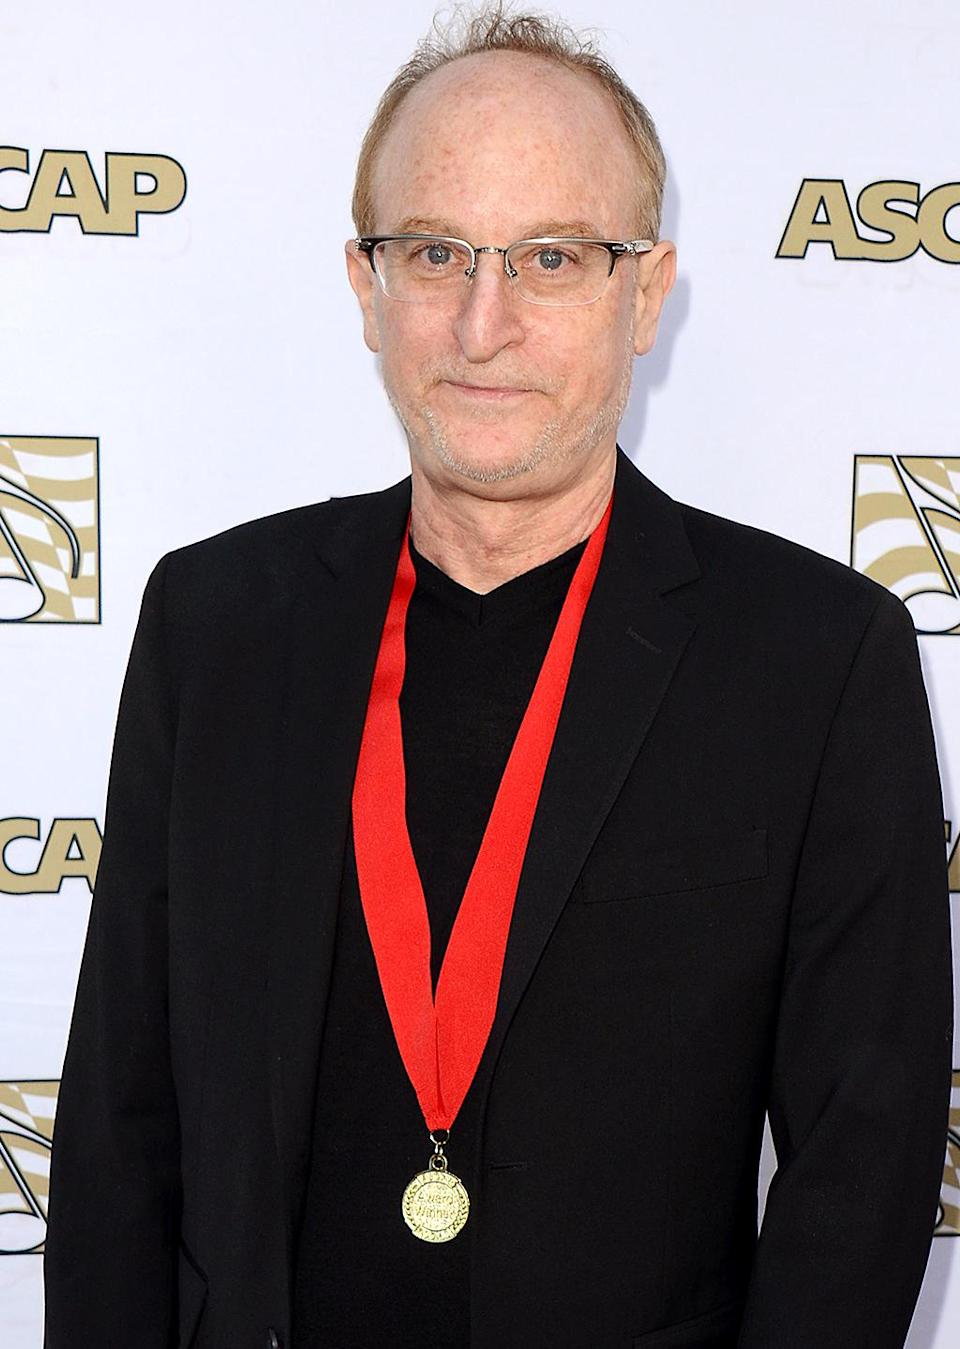 Elliot Marvin Wolff was a songwriter and producer who got his start working as a musical director for Peaches & Herb and later wrote hit songs for Johnny Gill, Paula Abdul, Taylor Dayne, and Color Me Badd, and others. On June 25, his body was found in the Santa Fe National Forest, two weeks after he had gone missing. (Photo: Getty)